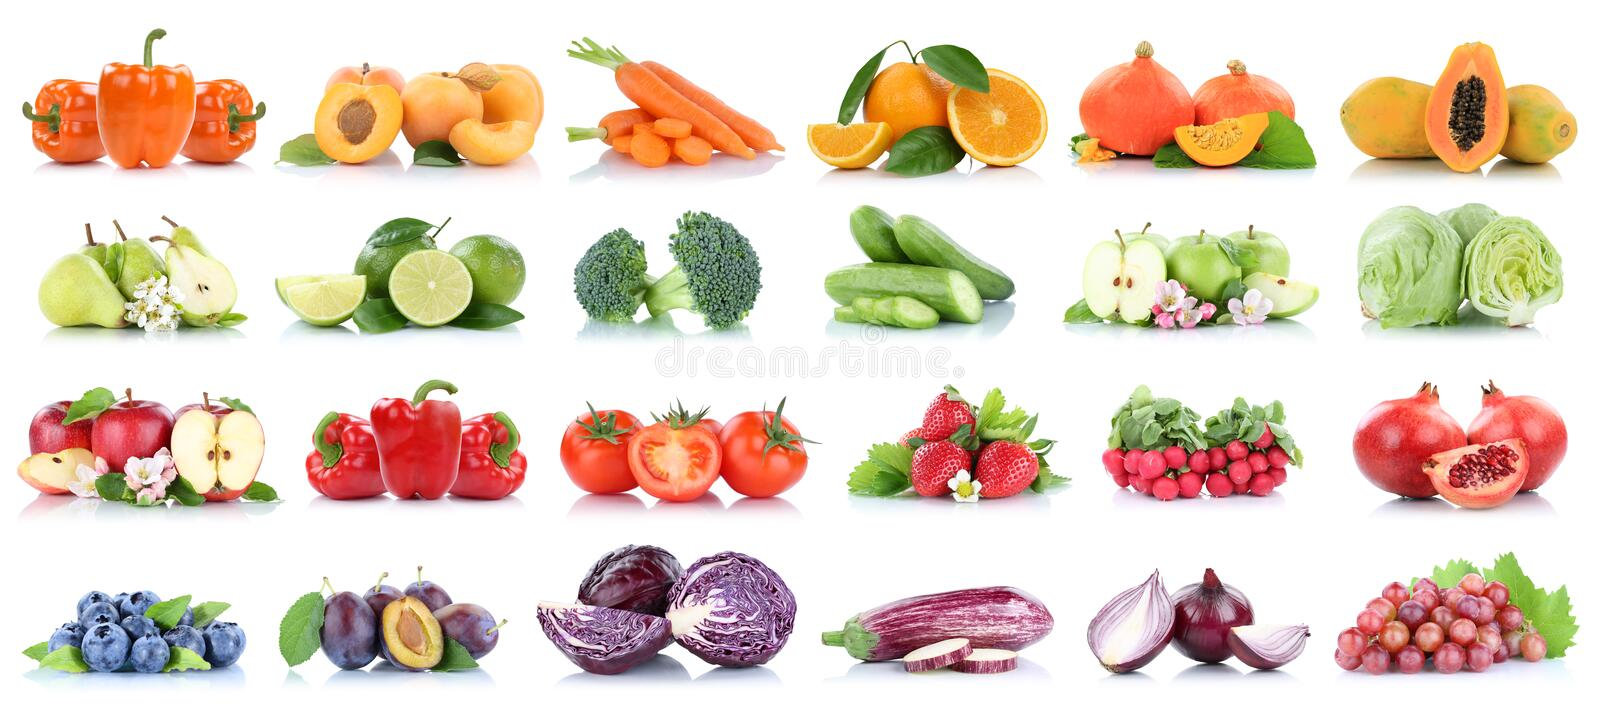 Fruits and vegetables collection isolated apple tomatoes orange pears lettuce colors fresh fruit stock images